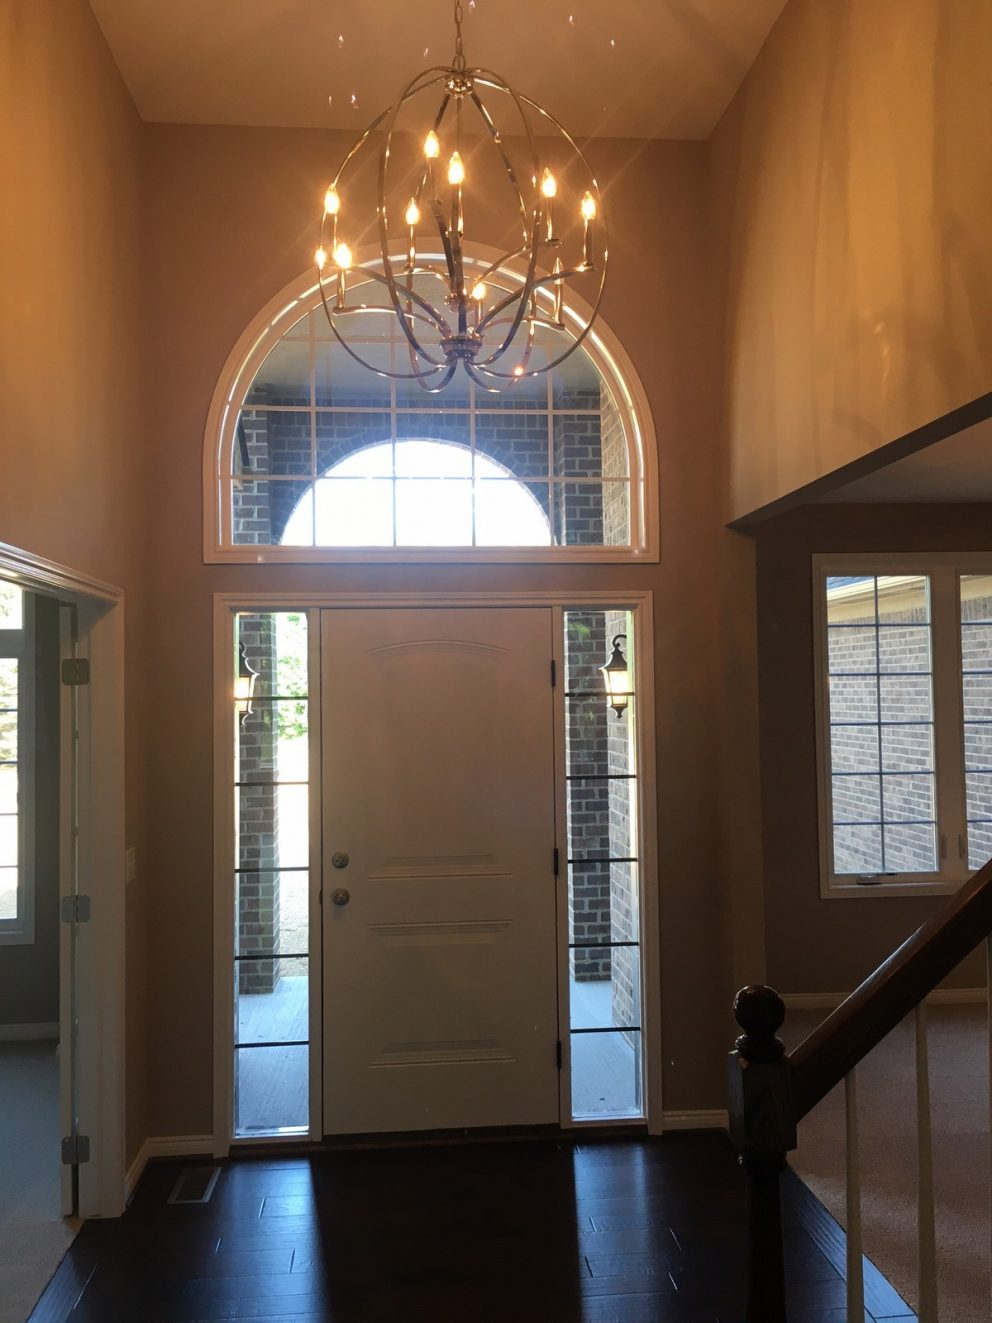 Foyer with high ceilings and chandelier